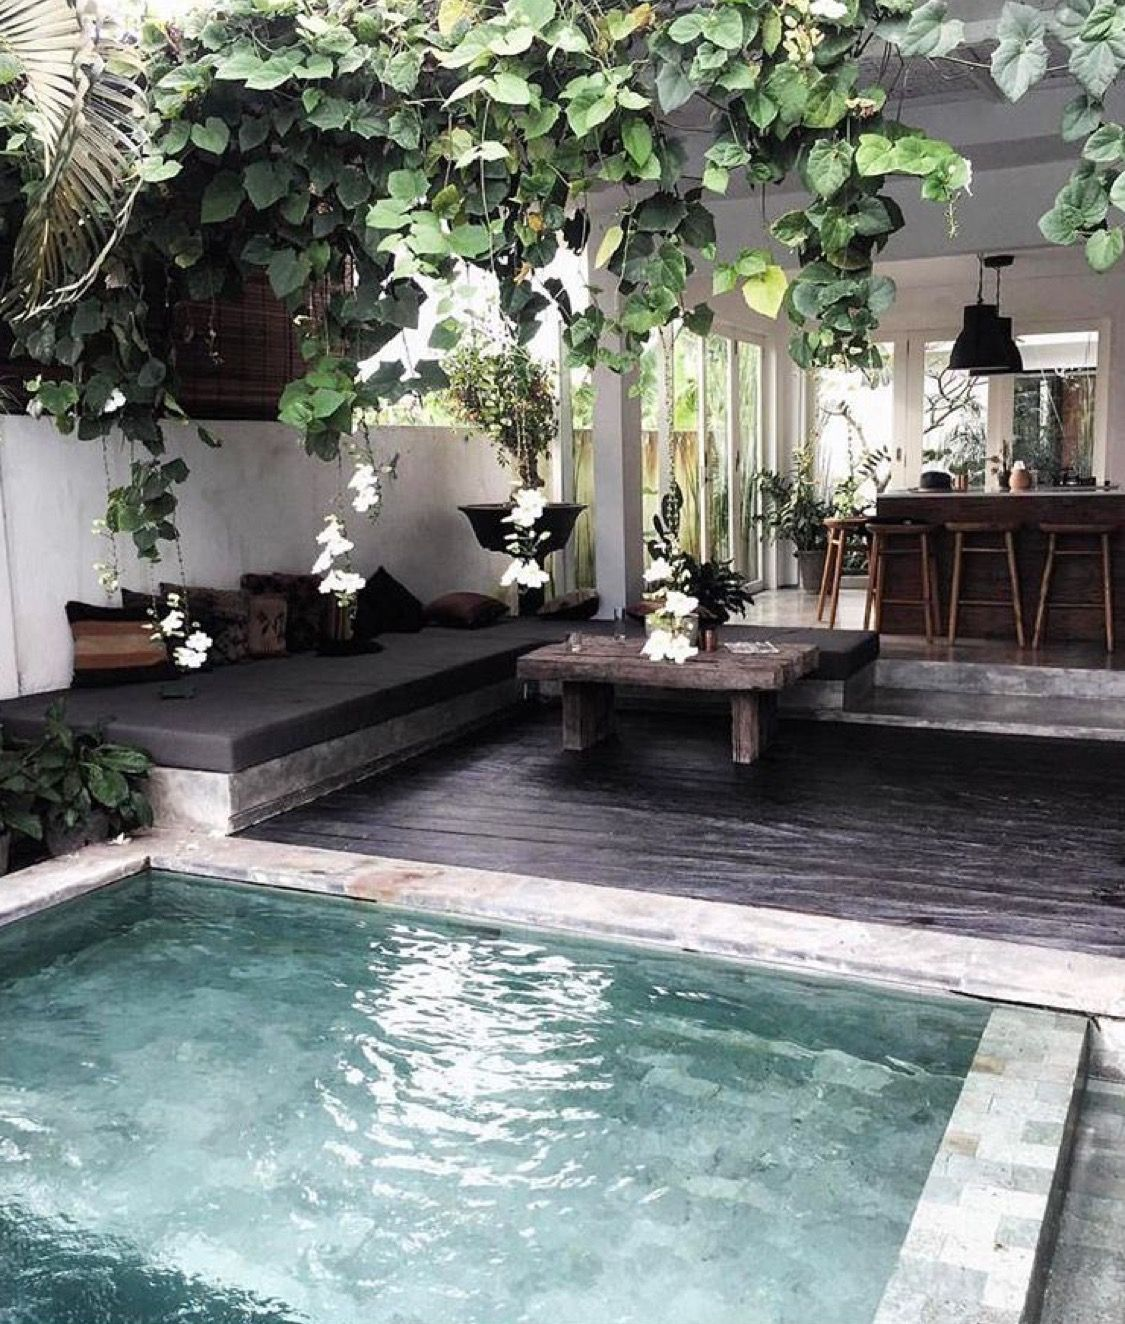 166 Best Outdoor Patio Pool Images On Pinterest: Built-in Lounge. Great Living Pergola. Concrete Hot Tub